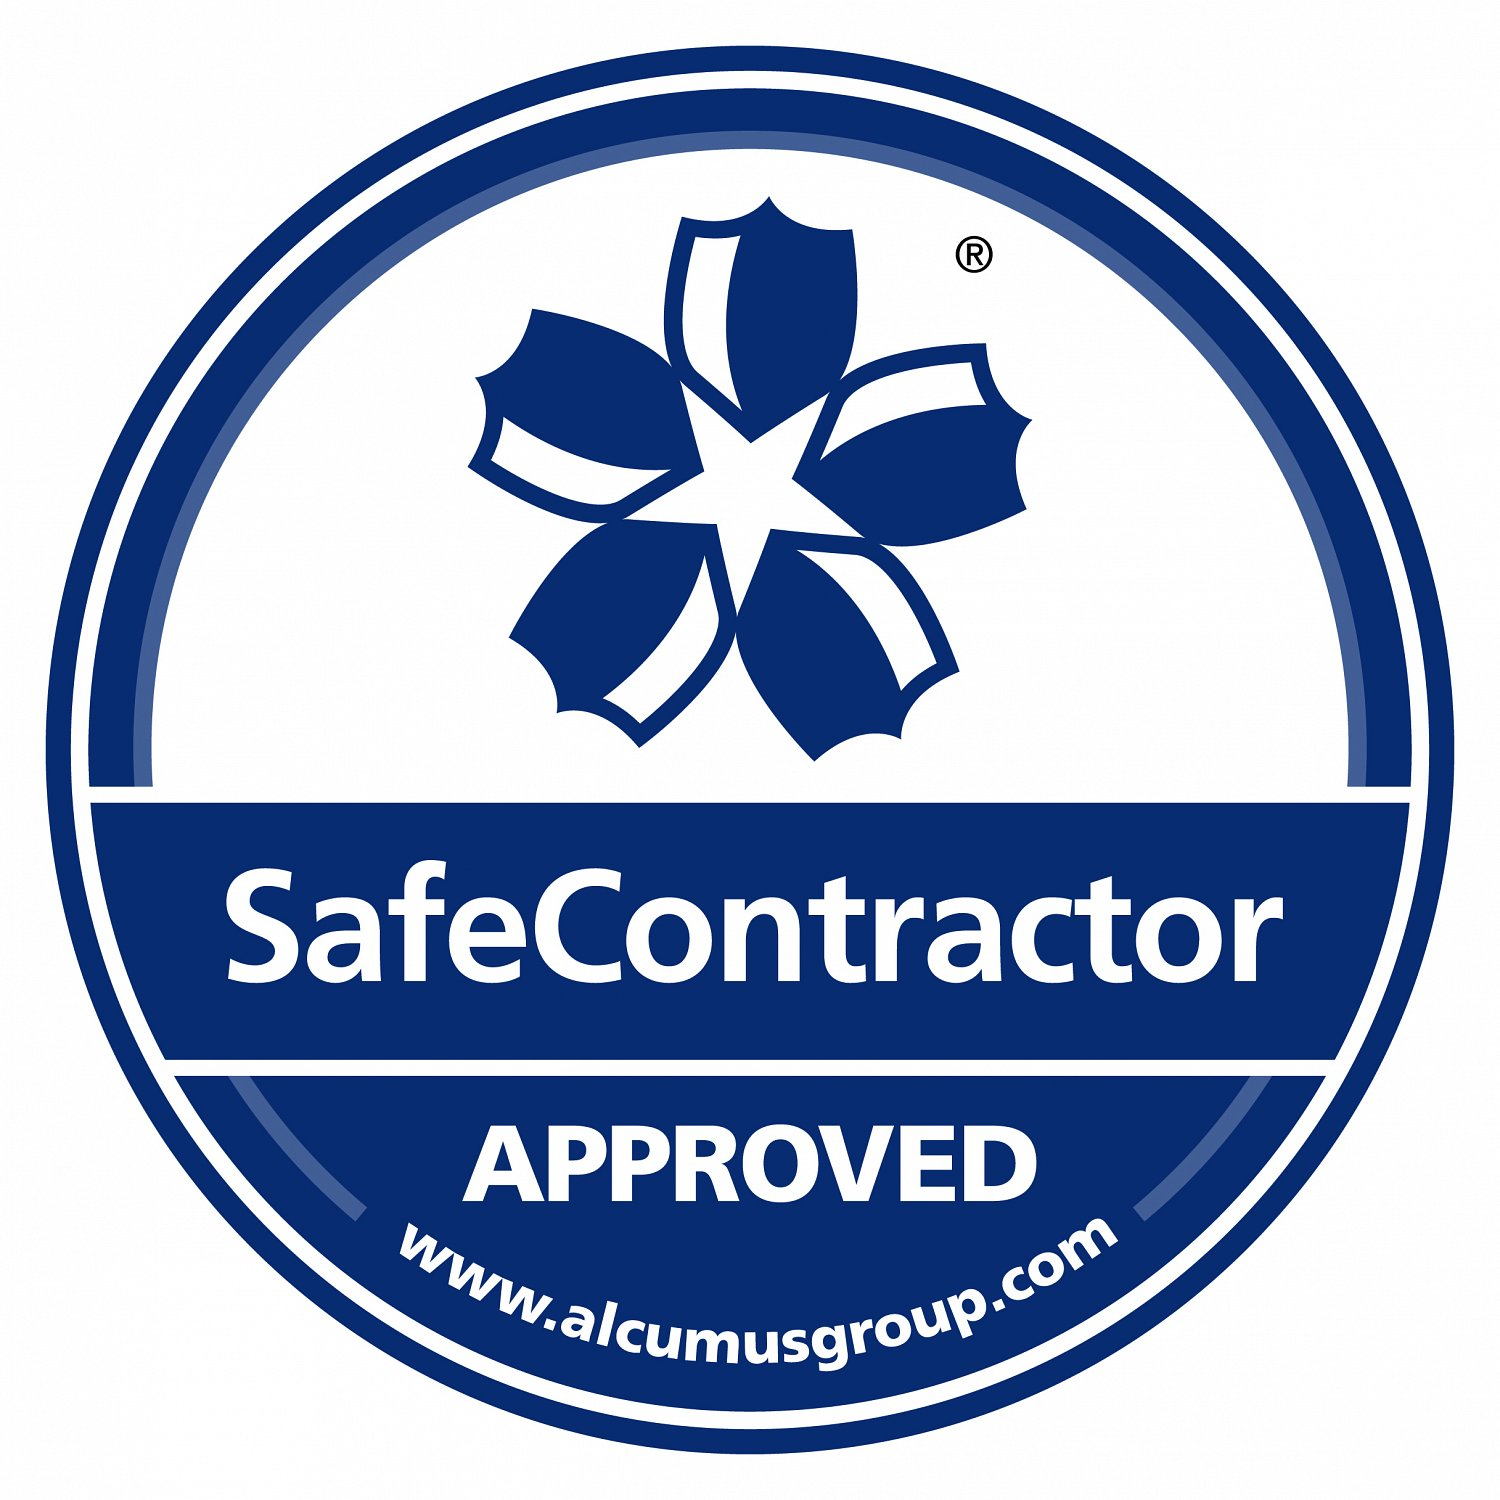 Your Plumber awarded Safecontractor recognition